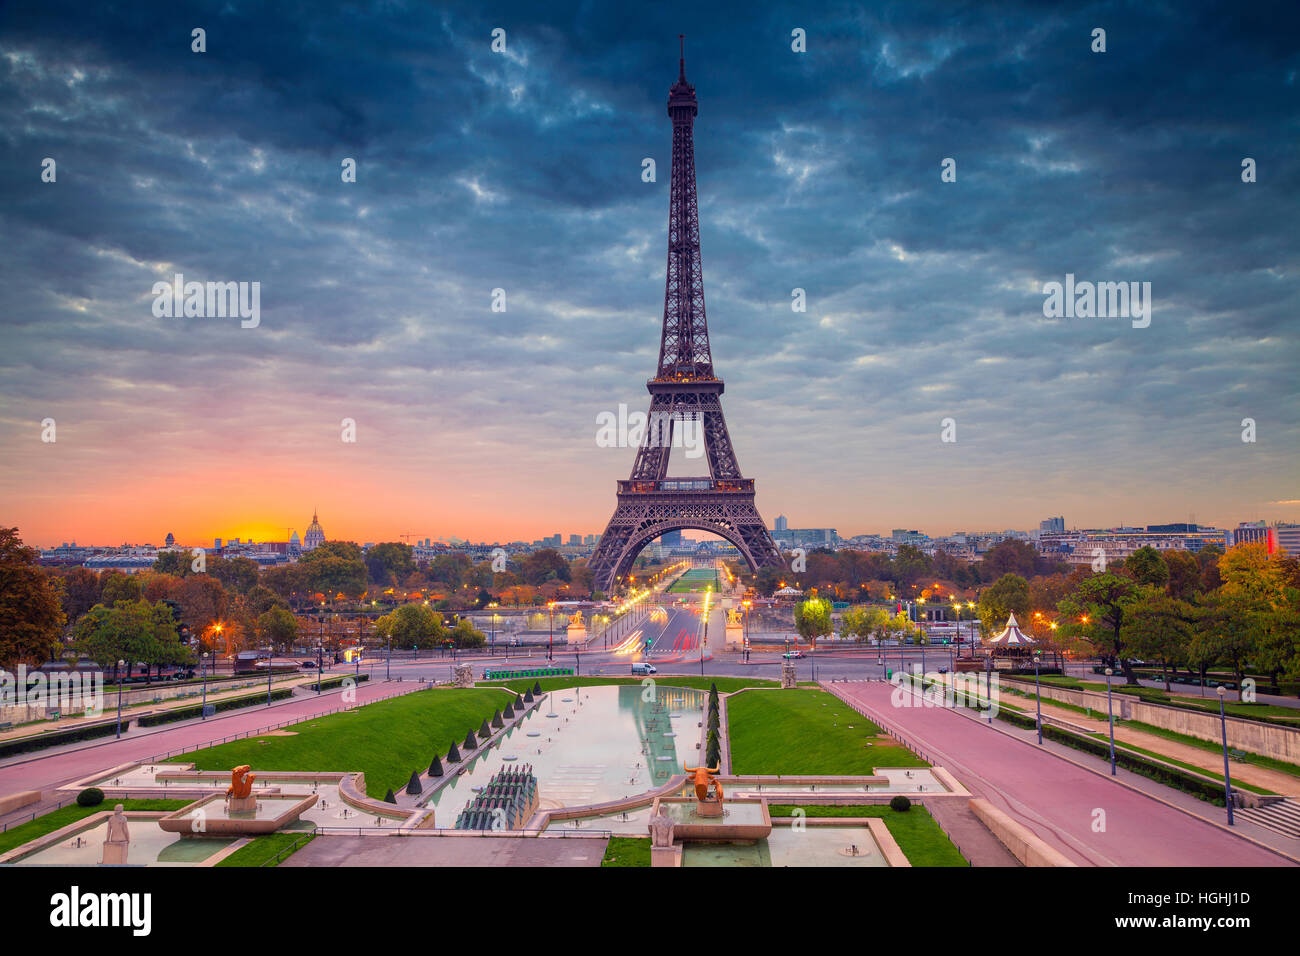 Paris. Cityscape image of Paris, France with the Eiffel Tower during sunrise. Stock Photo